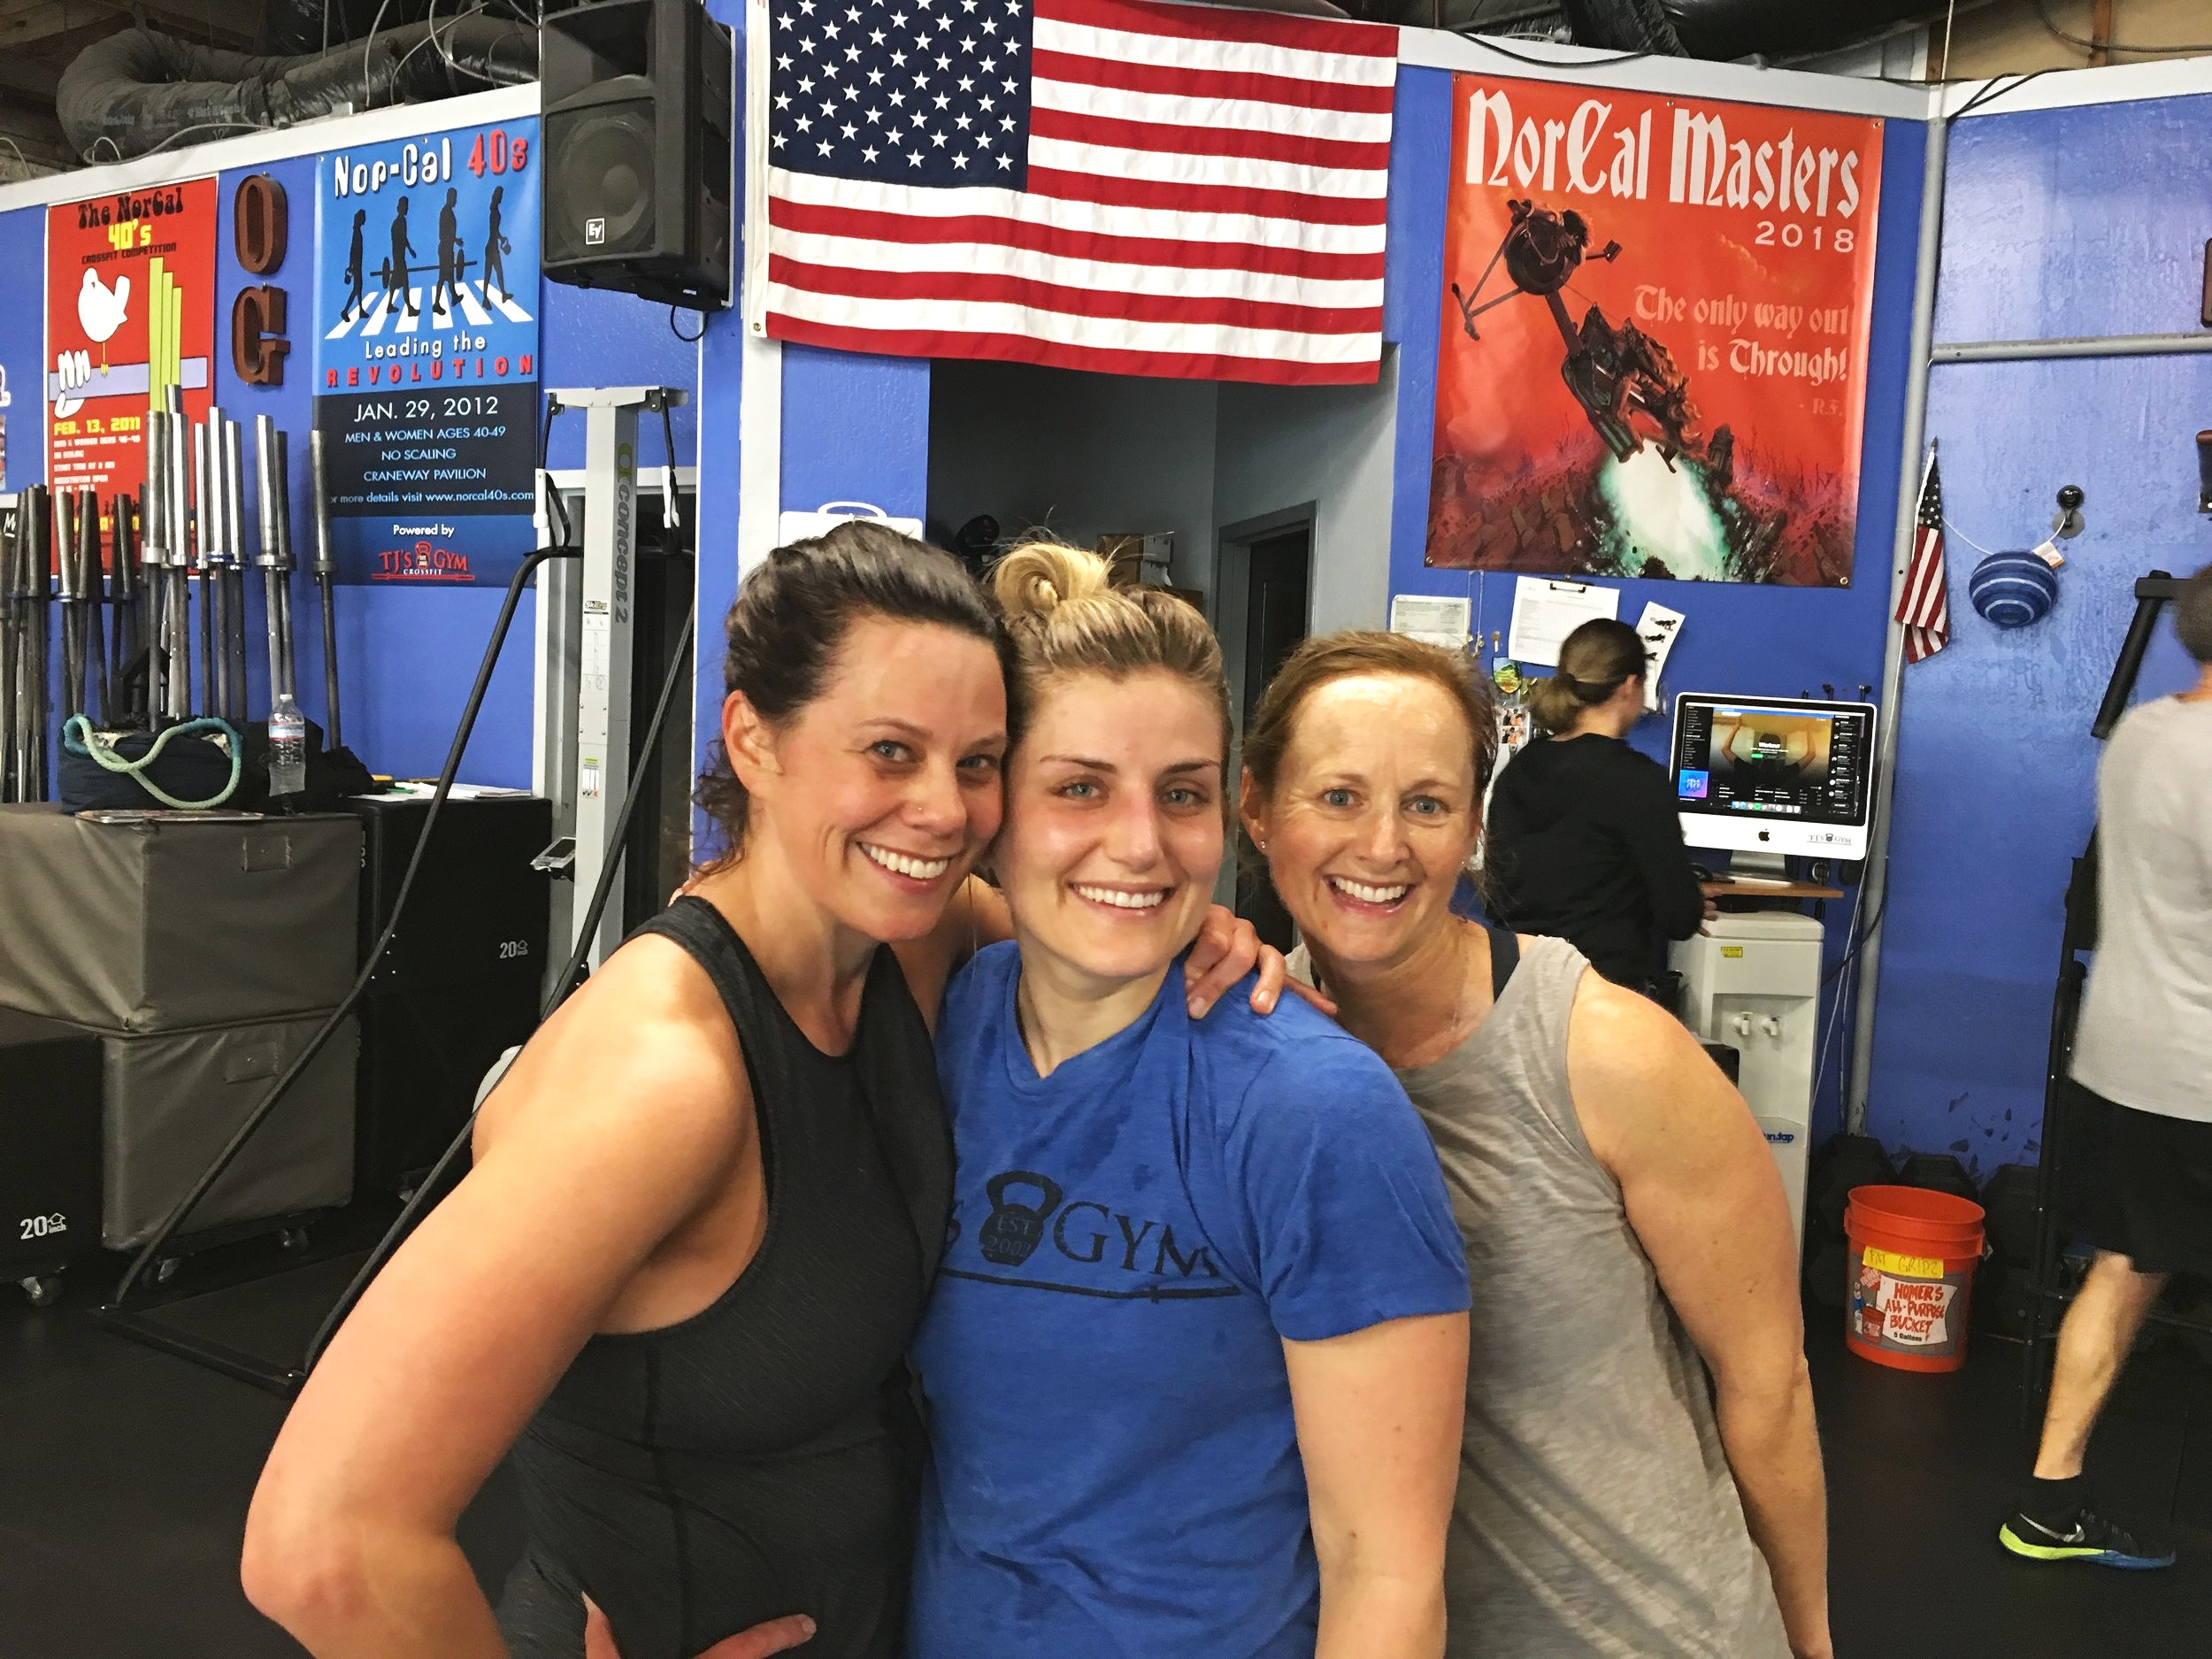 Gym friends for life. #OG - Three great, badass women we are lucky to know.